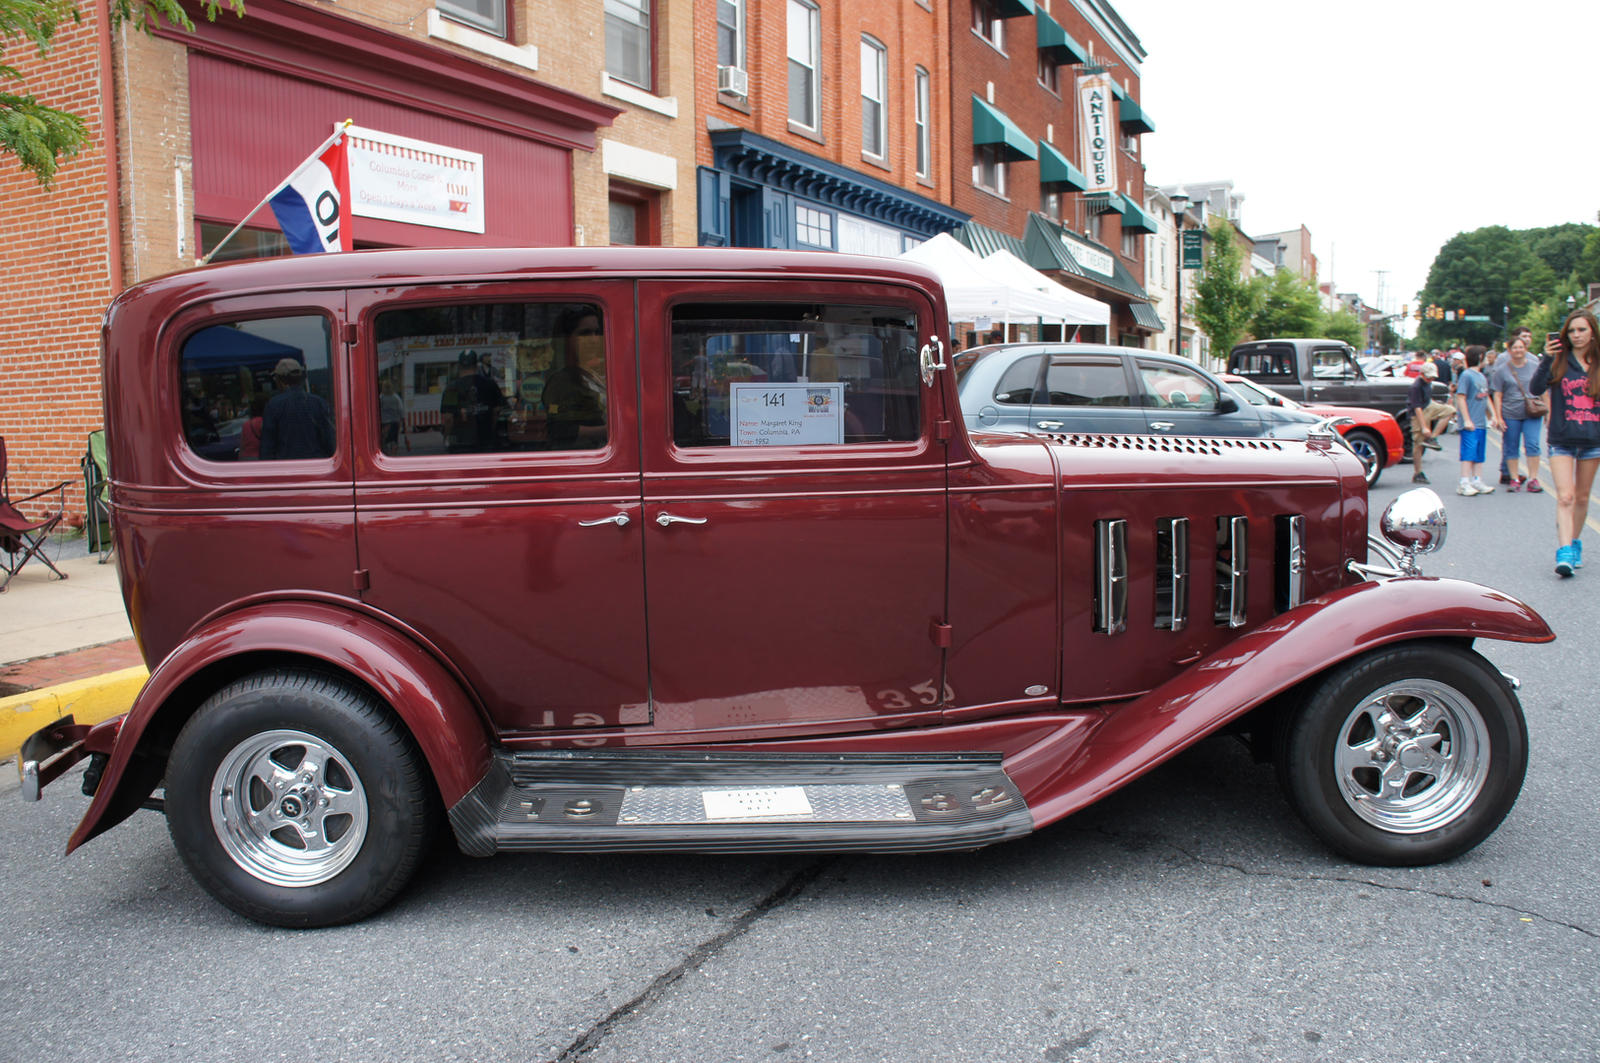 1932 chevrolet 4 door sedan by theshepherd1 on deviantart for 1932 chevy 4 door sedan